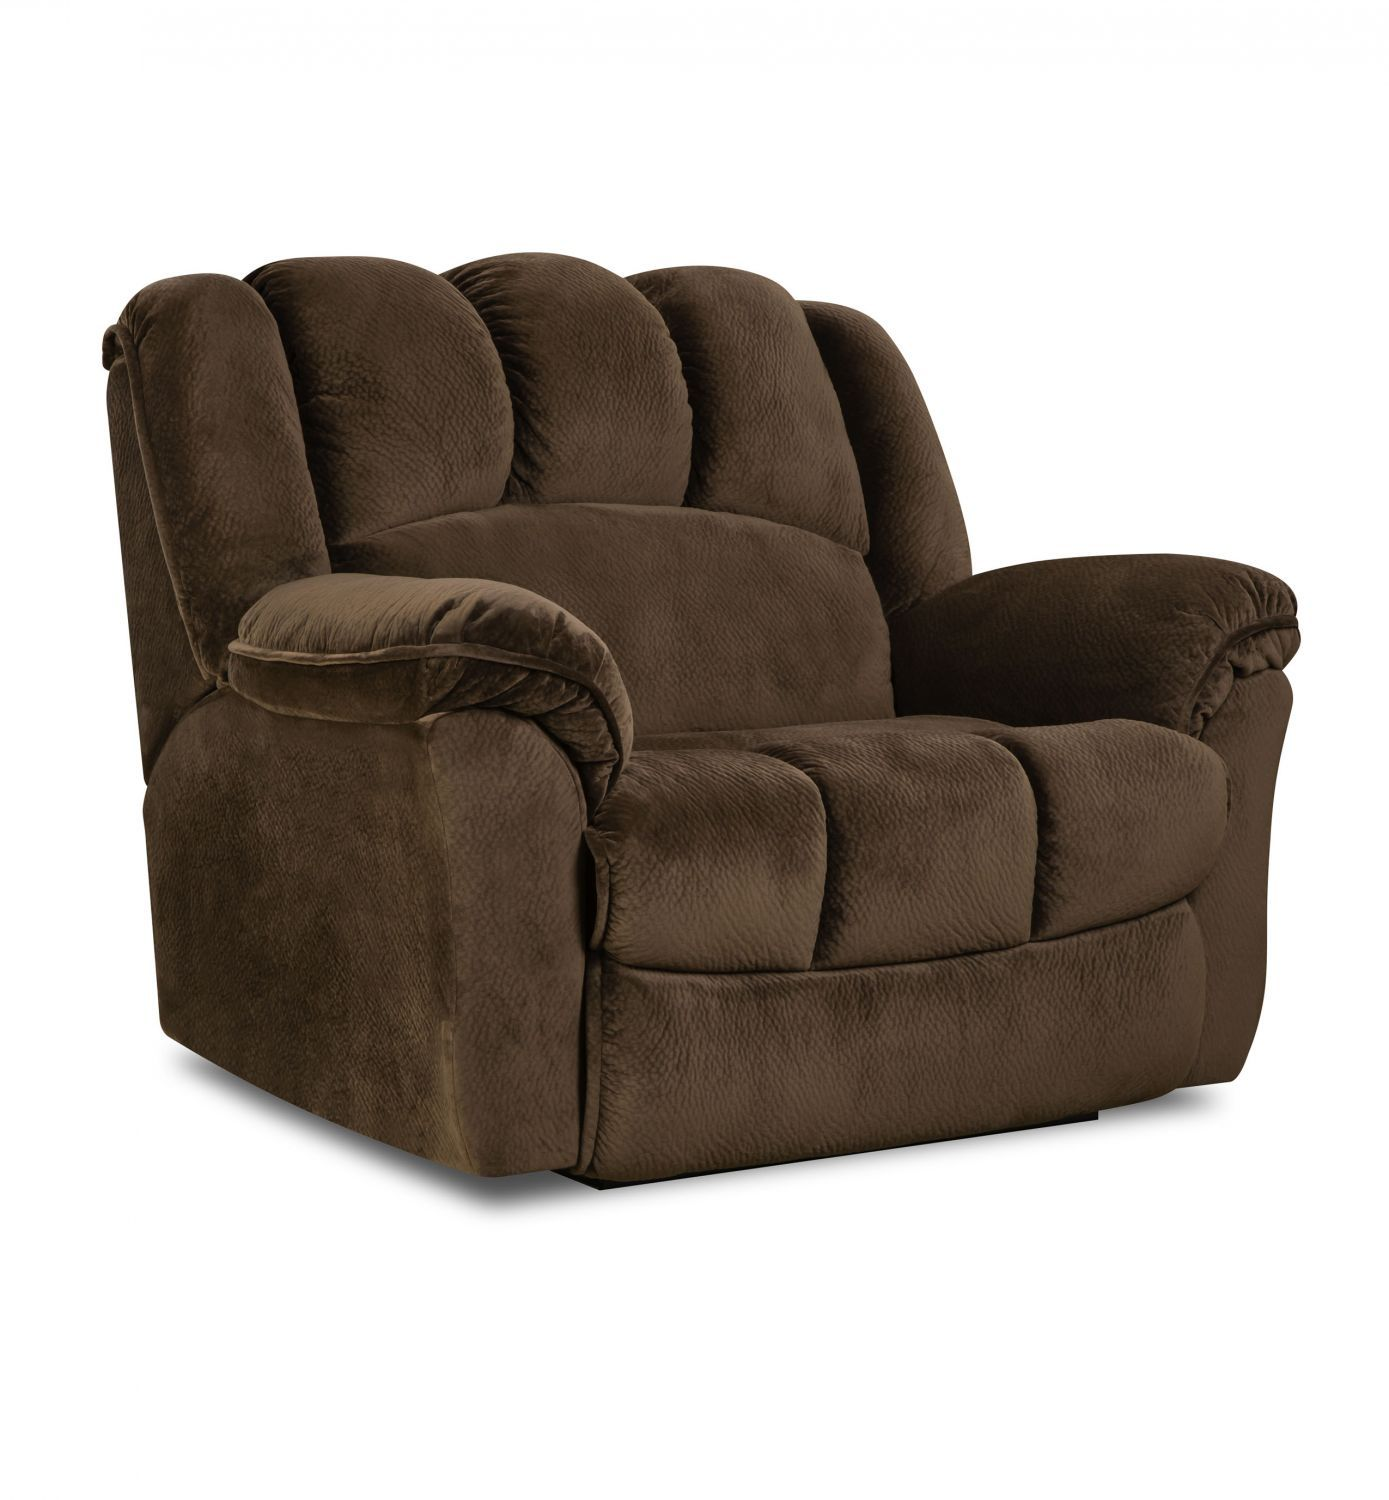 This Oversized Snuggler Recliner is just big enough for two